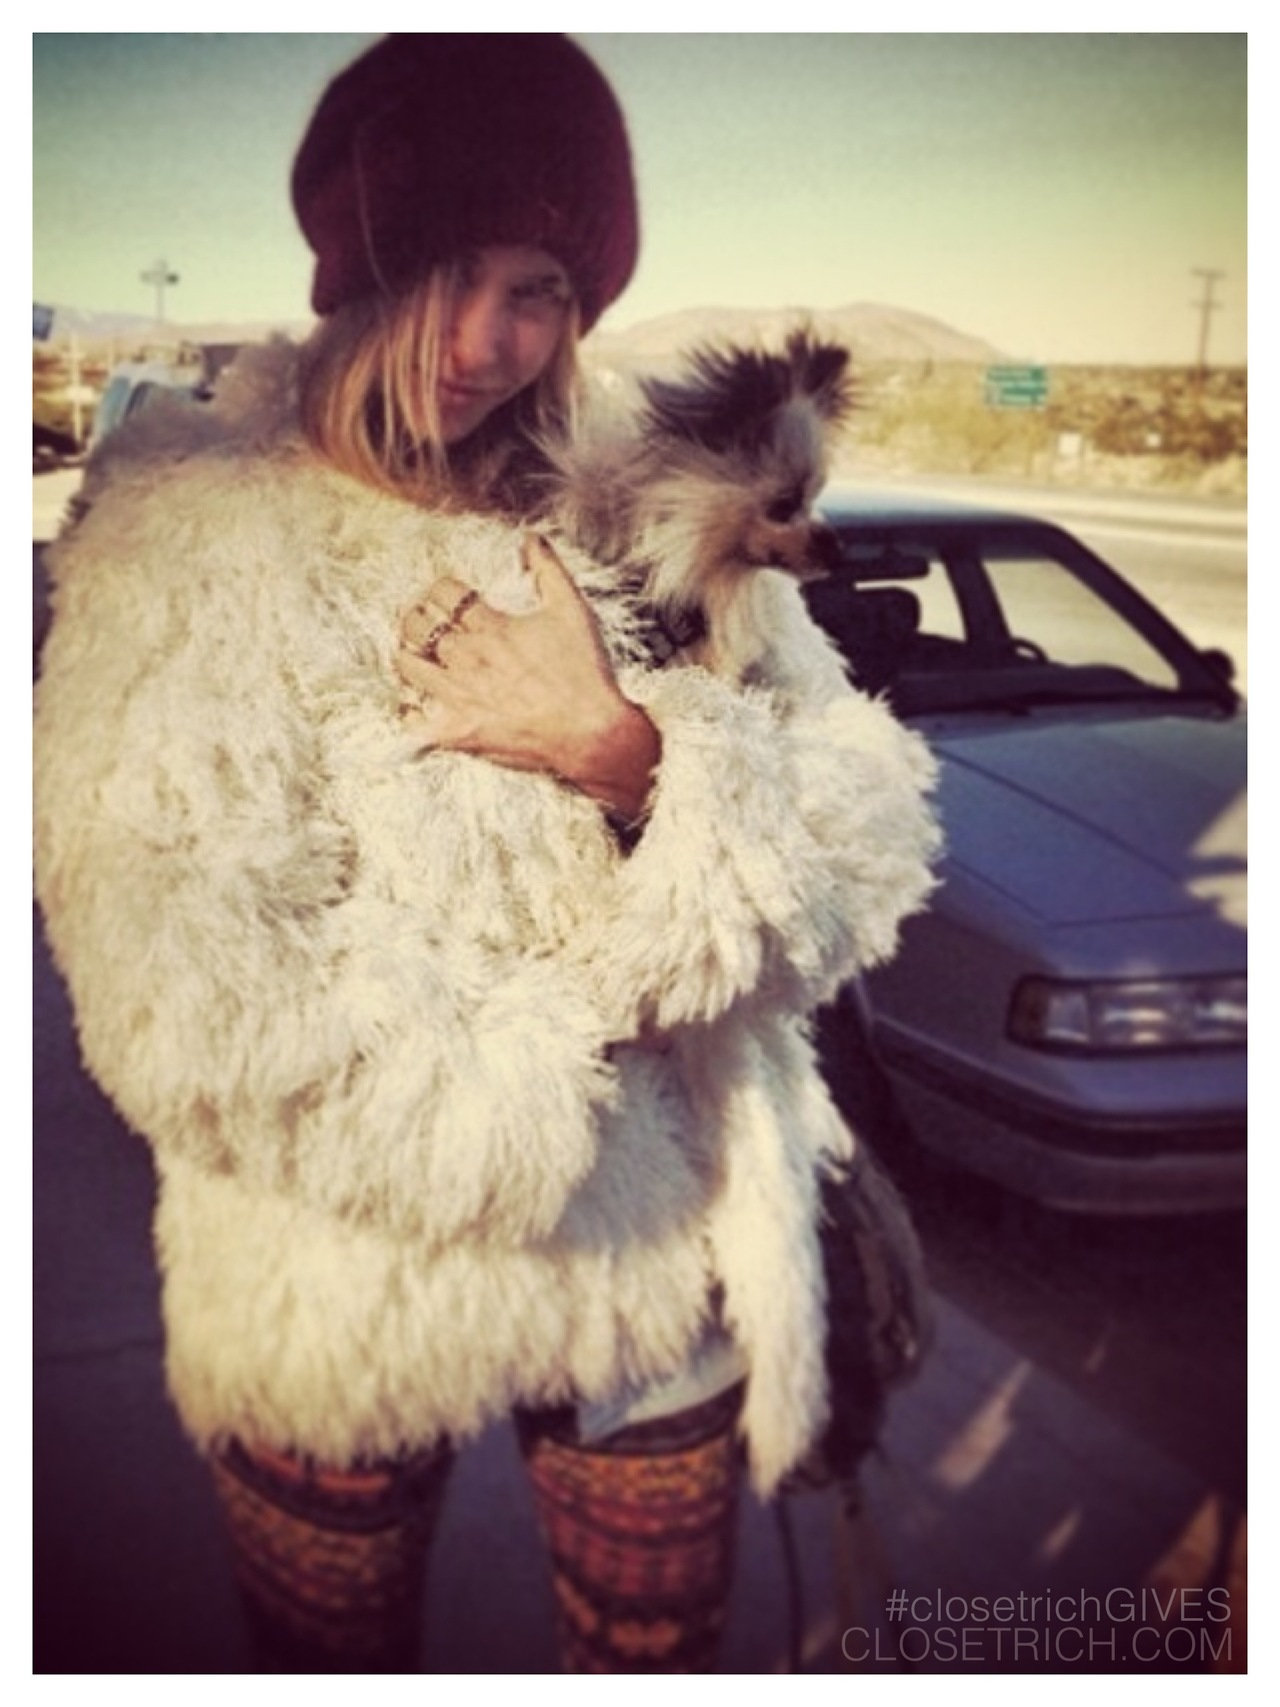 This AMAZING vintage shag coat is sold out, but we have more incredible vintage from Gillian Zinser's insanely fab closet exclusively available on closetrich.com - 50% of all sales from the sale are going to Waves For Water's Hurricane Sandy Relief Initiative (p.s. the cashmere beanie in the pic is up for grabs too!)